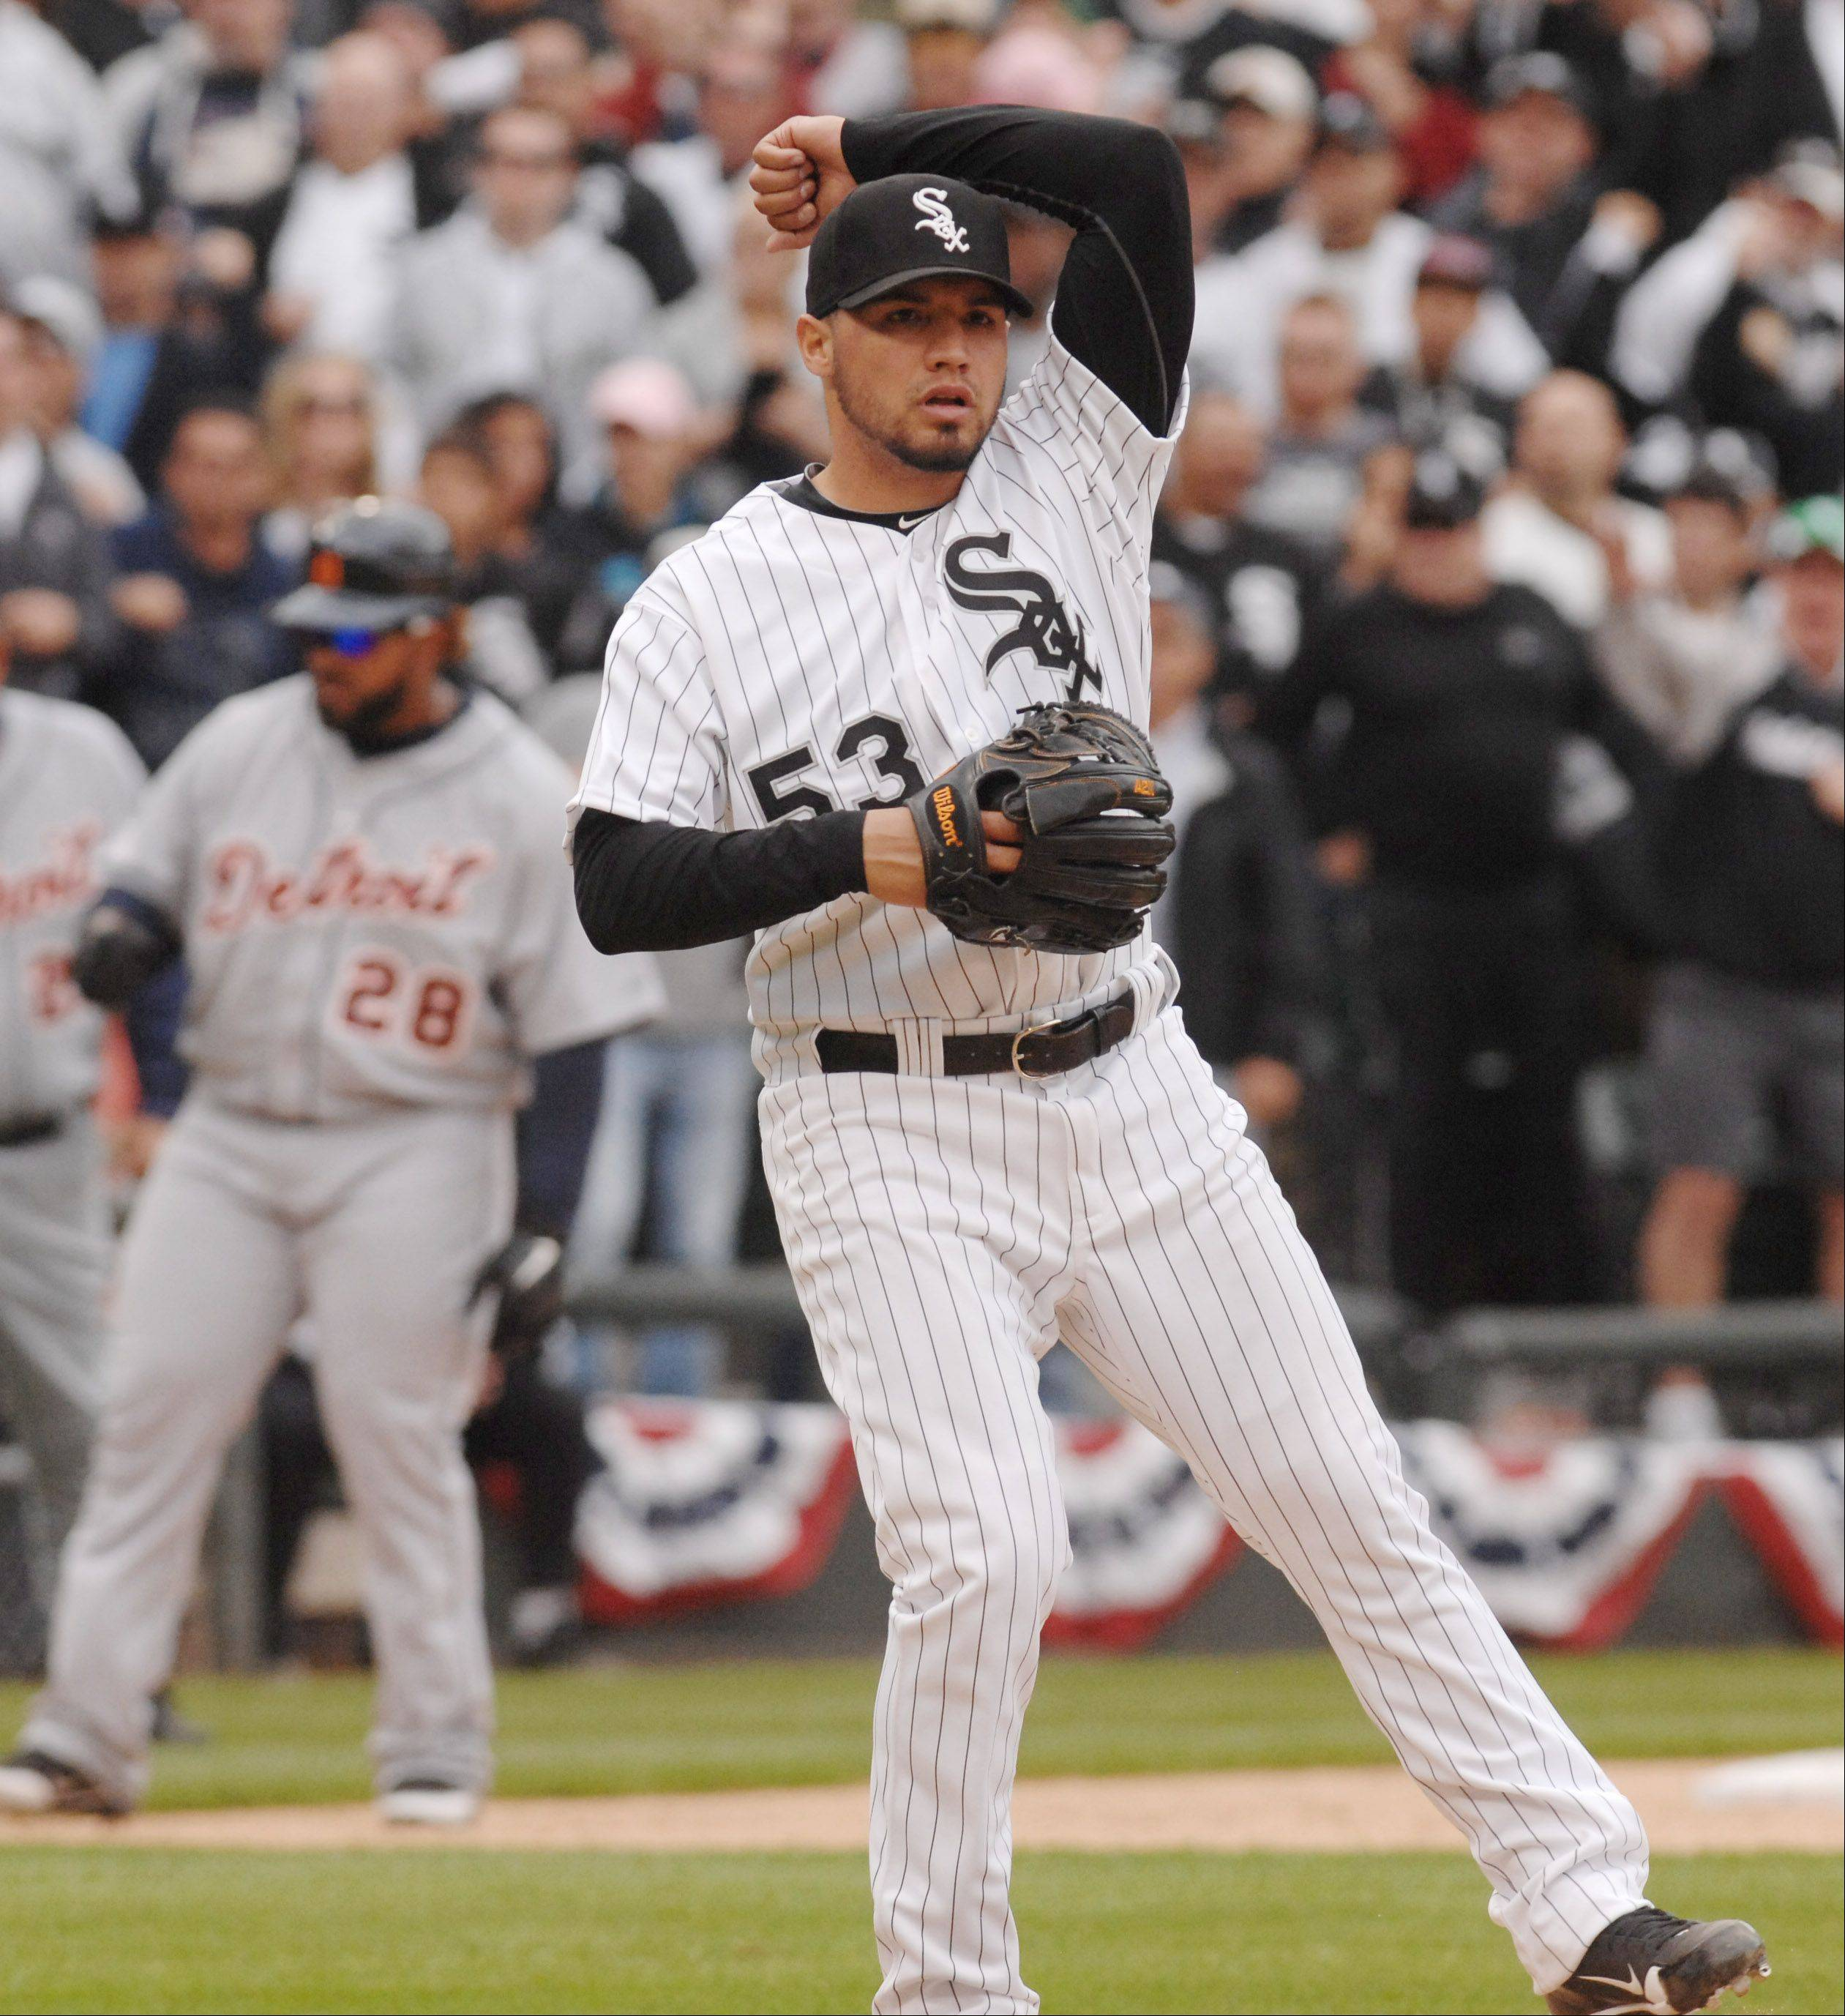 White Sox pitcher Hector Santiago celebrates a victory over the Tigers.